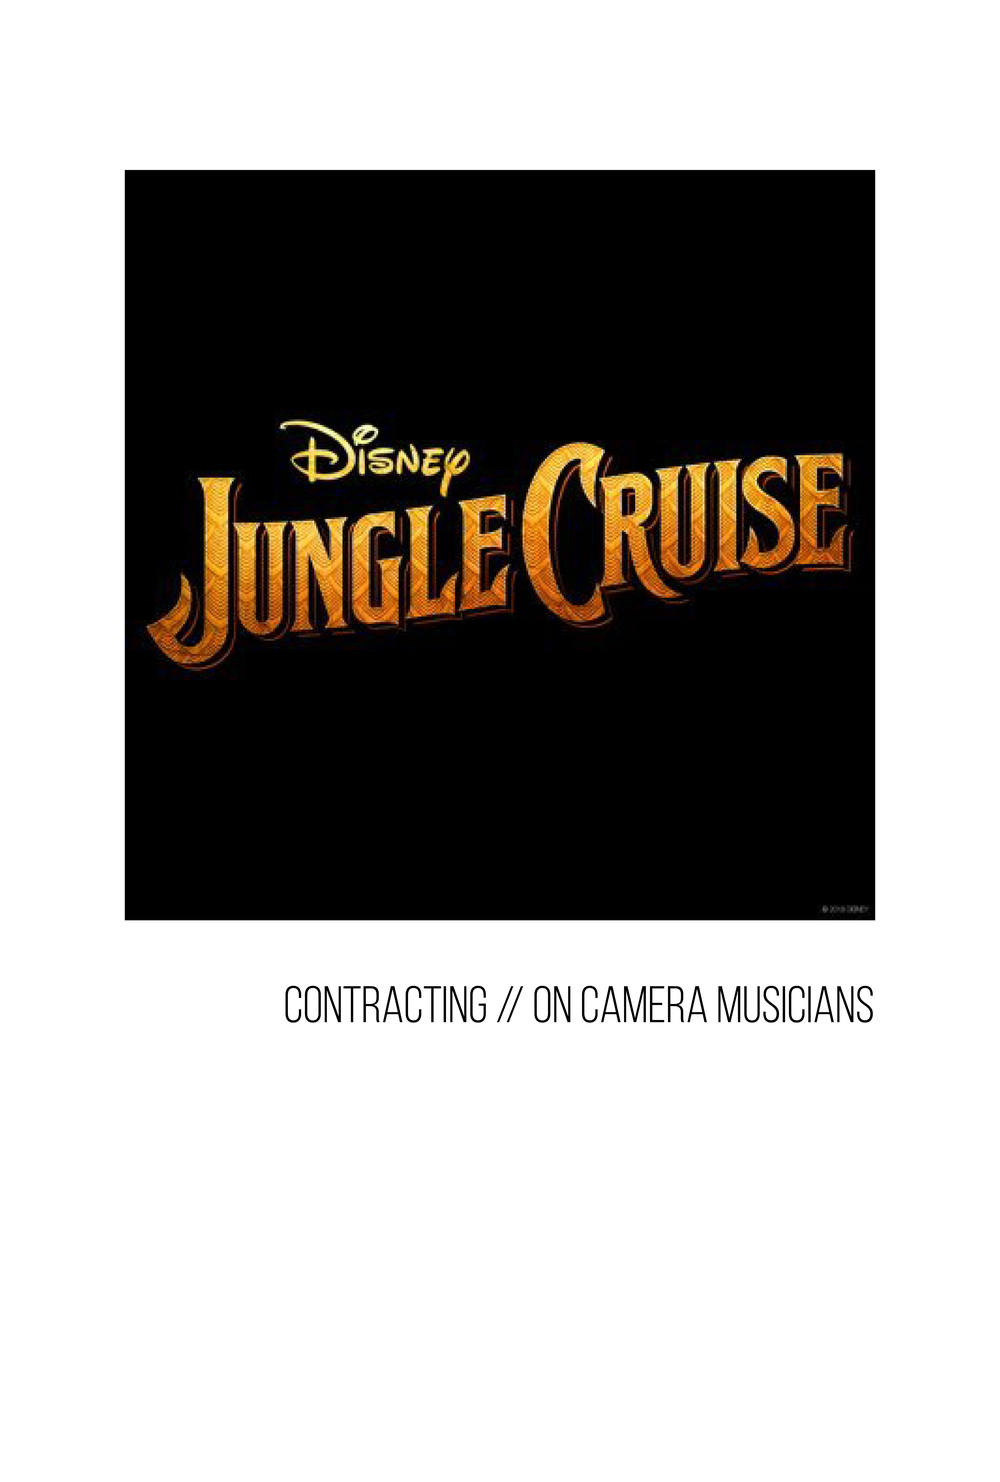 jungle cruise-01.png